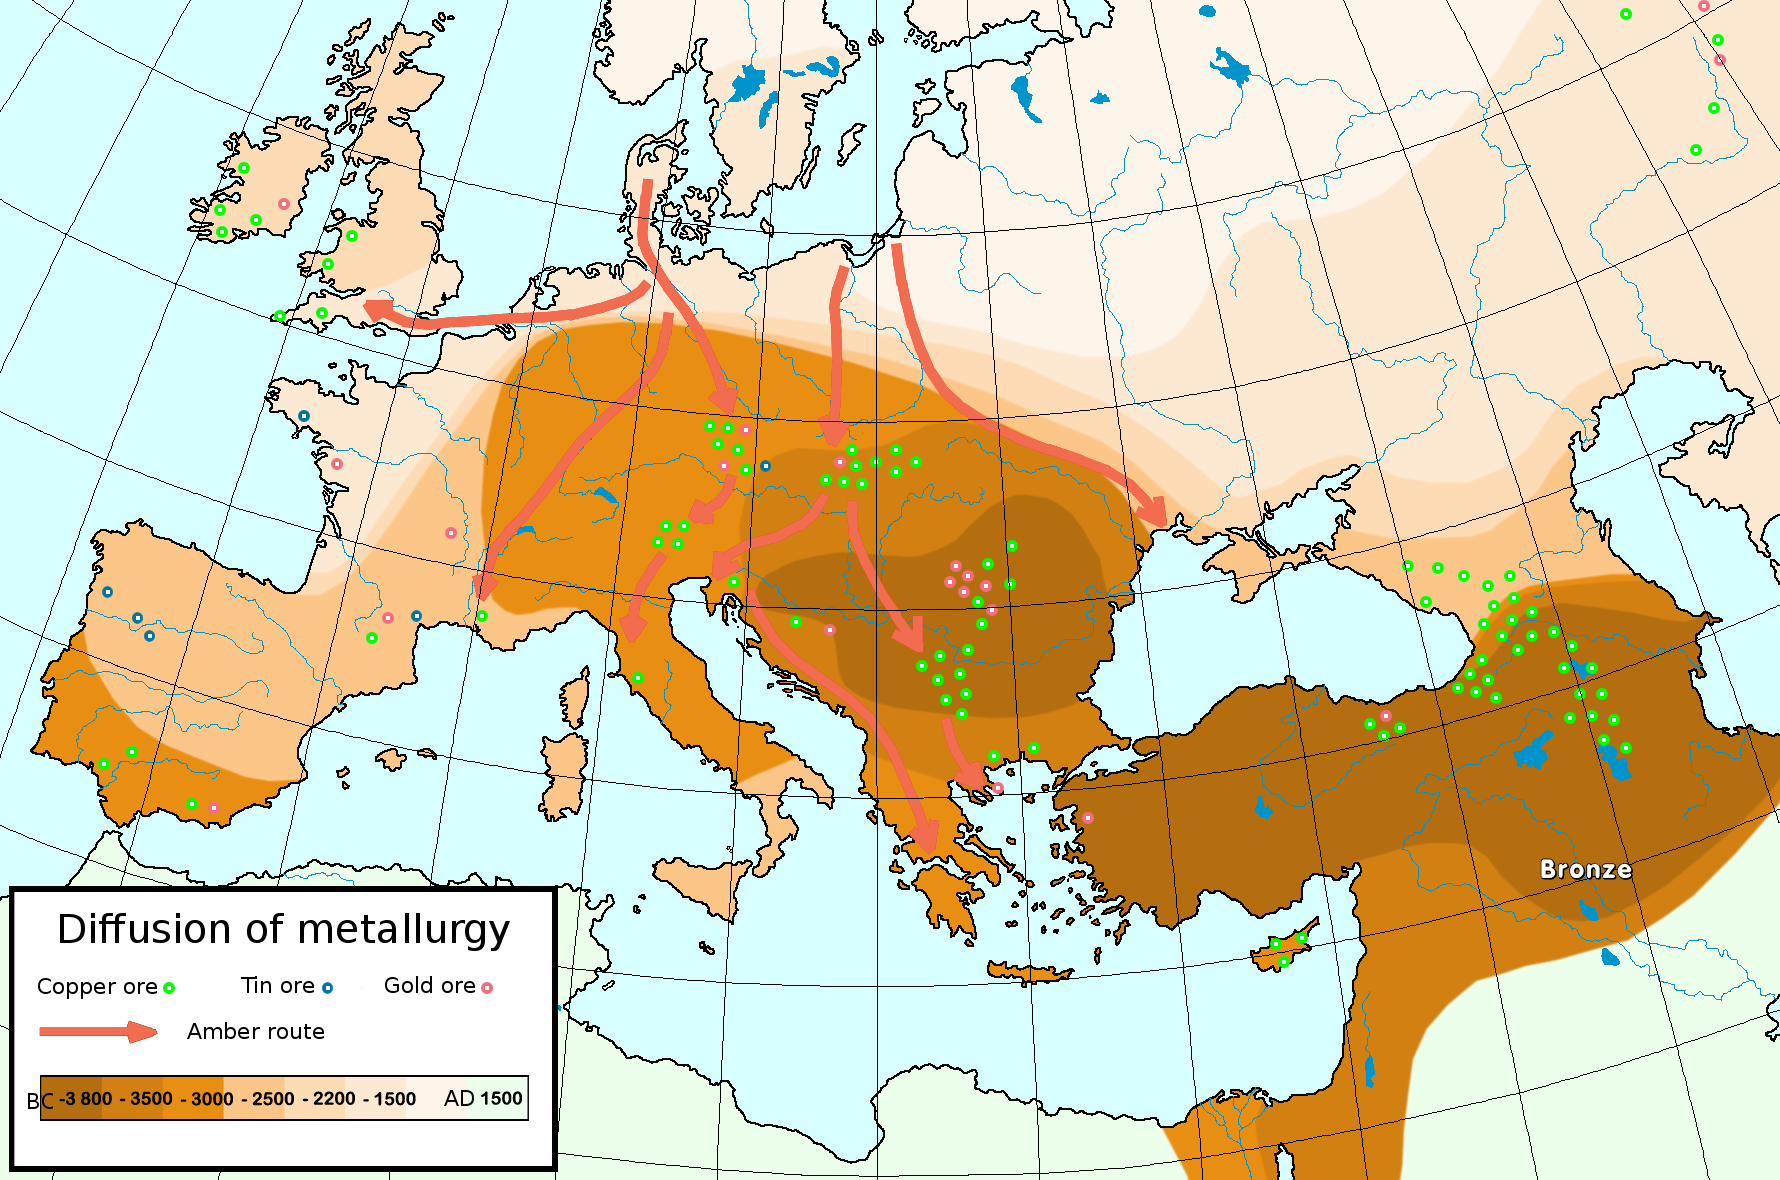 Diffusion of metallurgy r1b df27 pinterest sumerian history map diffusion of metallurgy in europe and asia minor the darkest areas are the oldest is a time period characterized by the use of bronze proto writing gumiabroncs Images